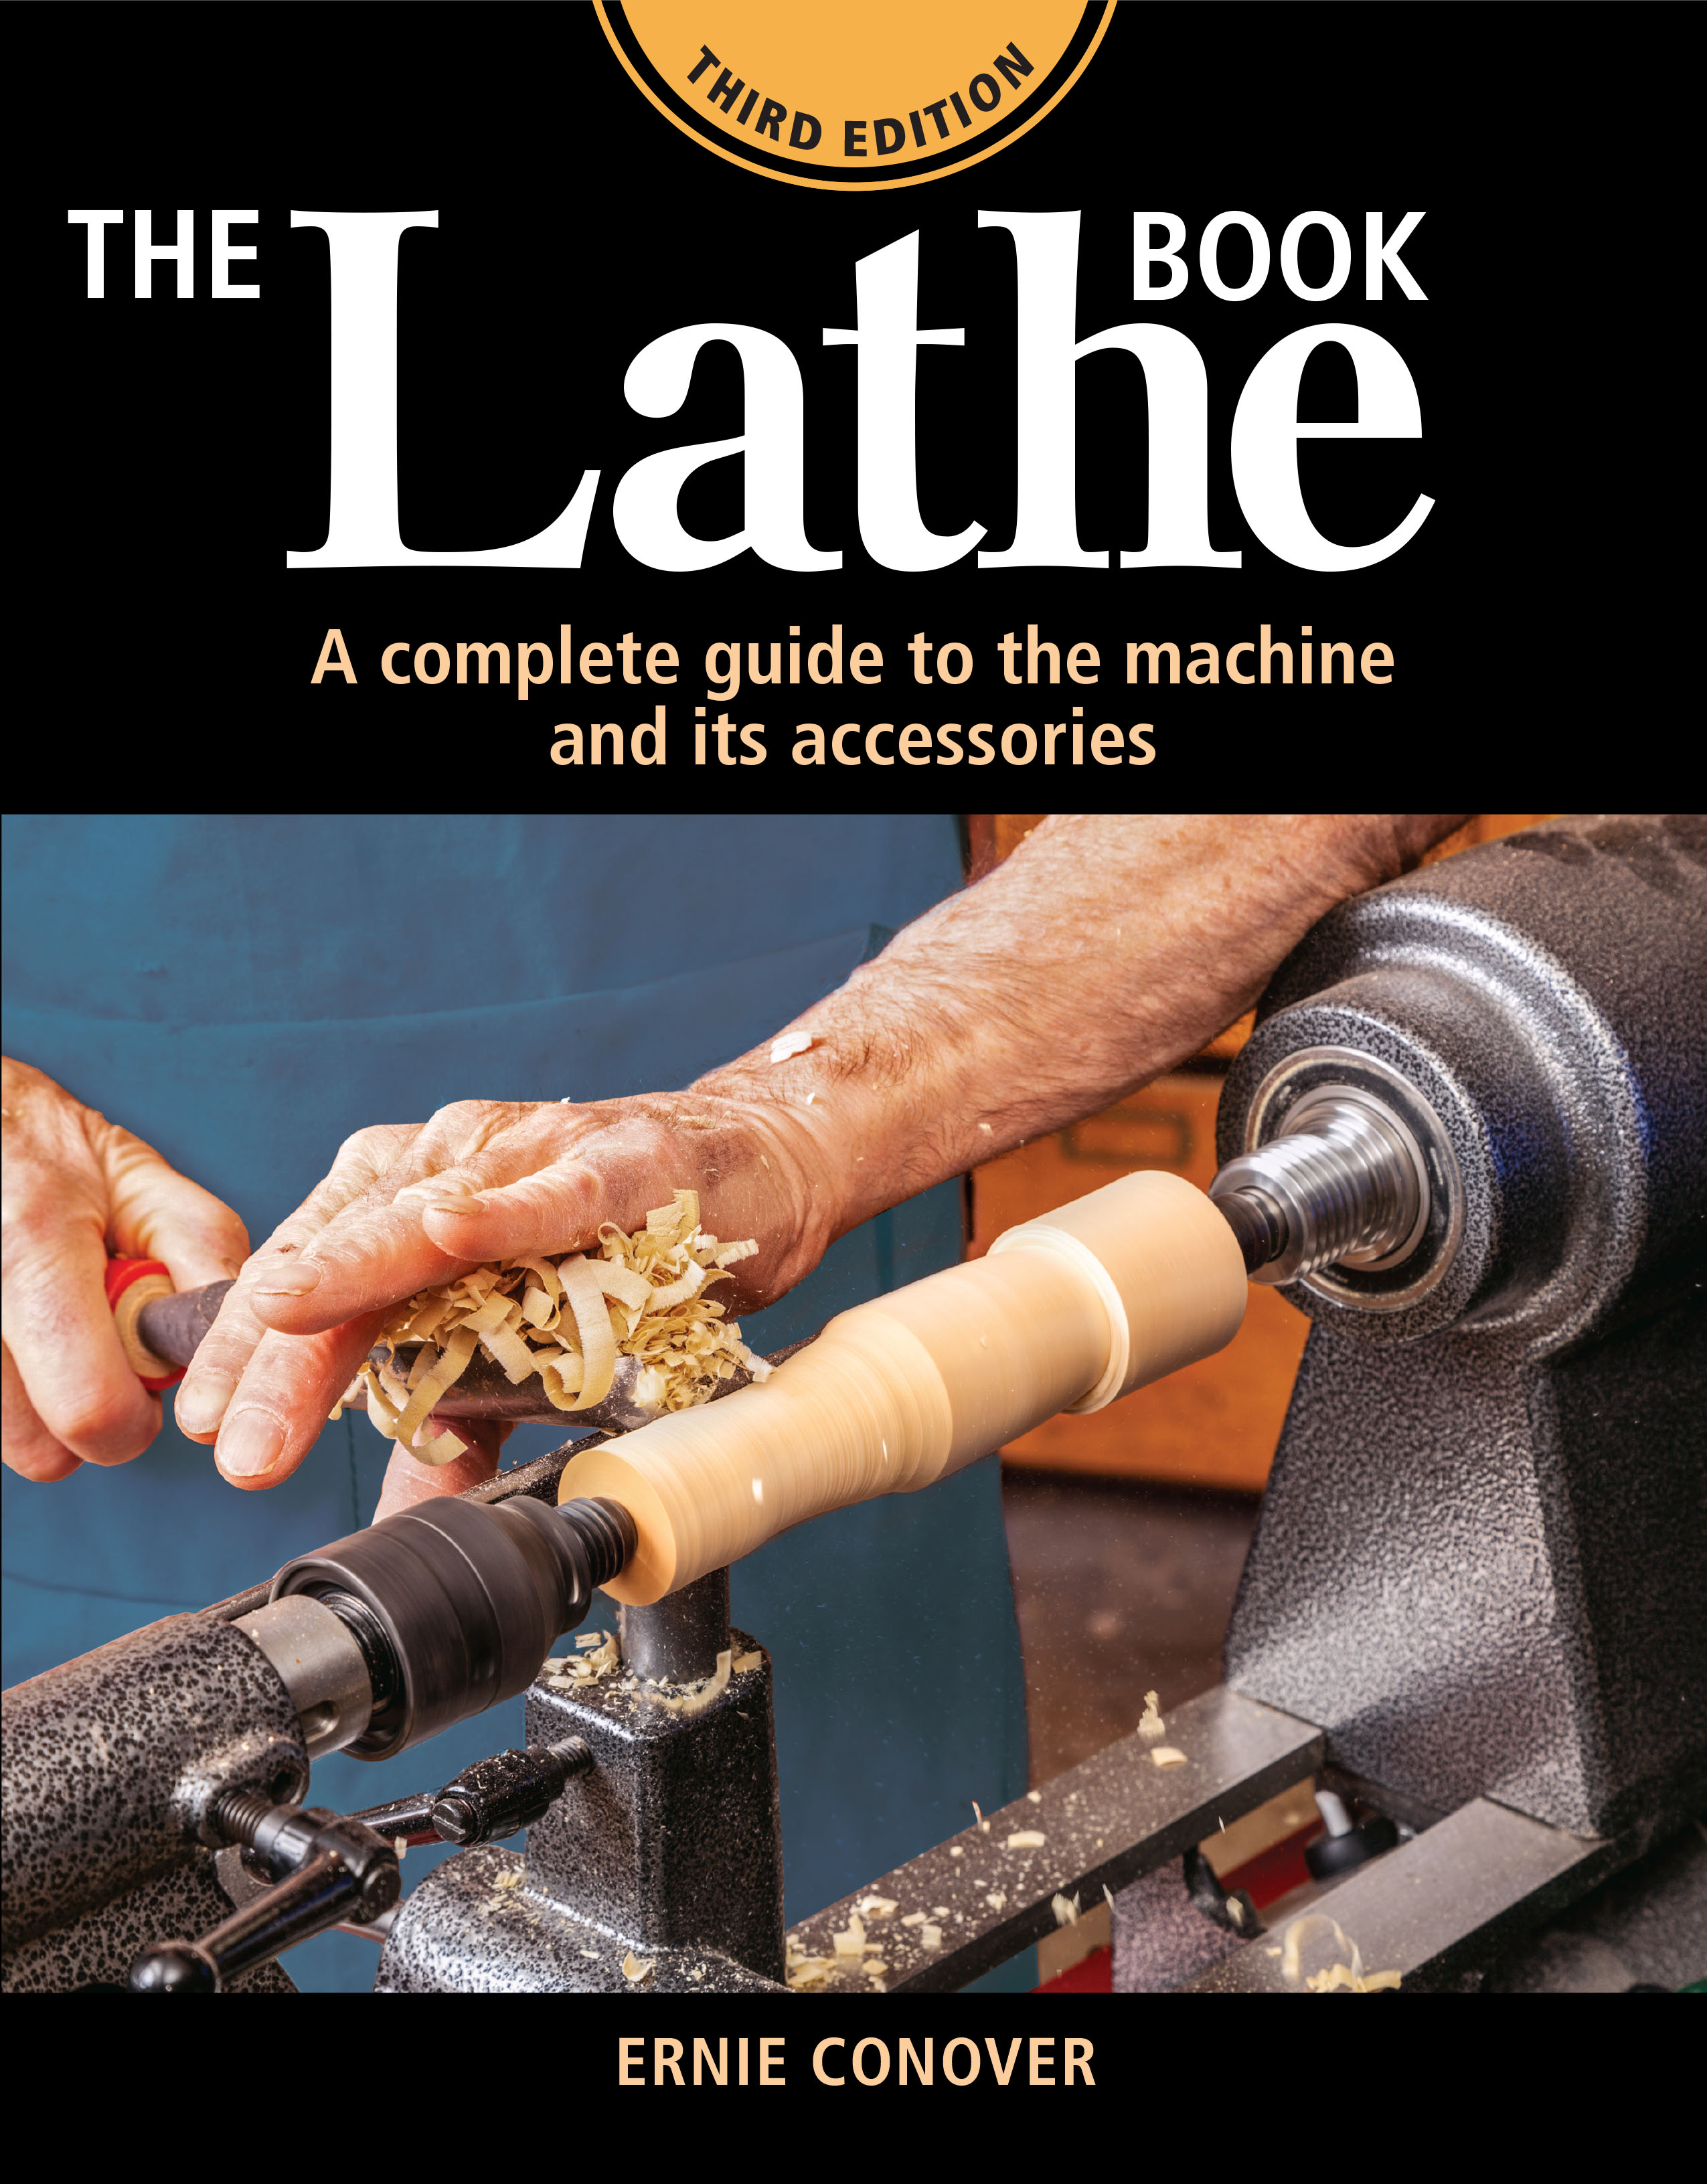 The Lathe                   Book by Ernie Conover